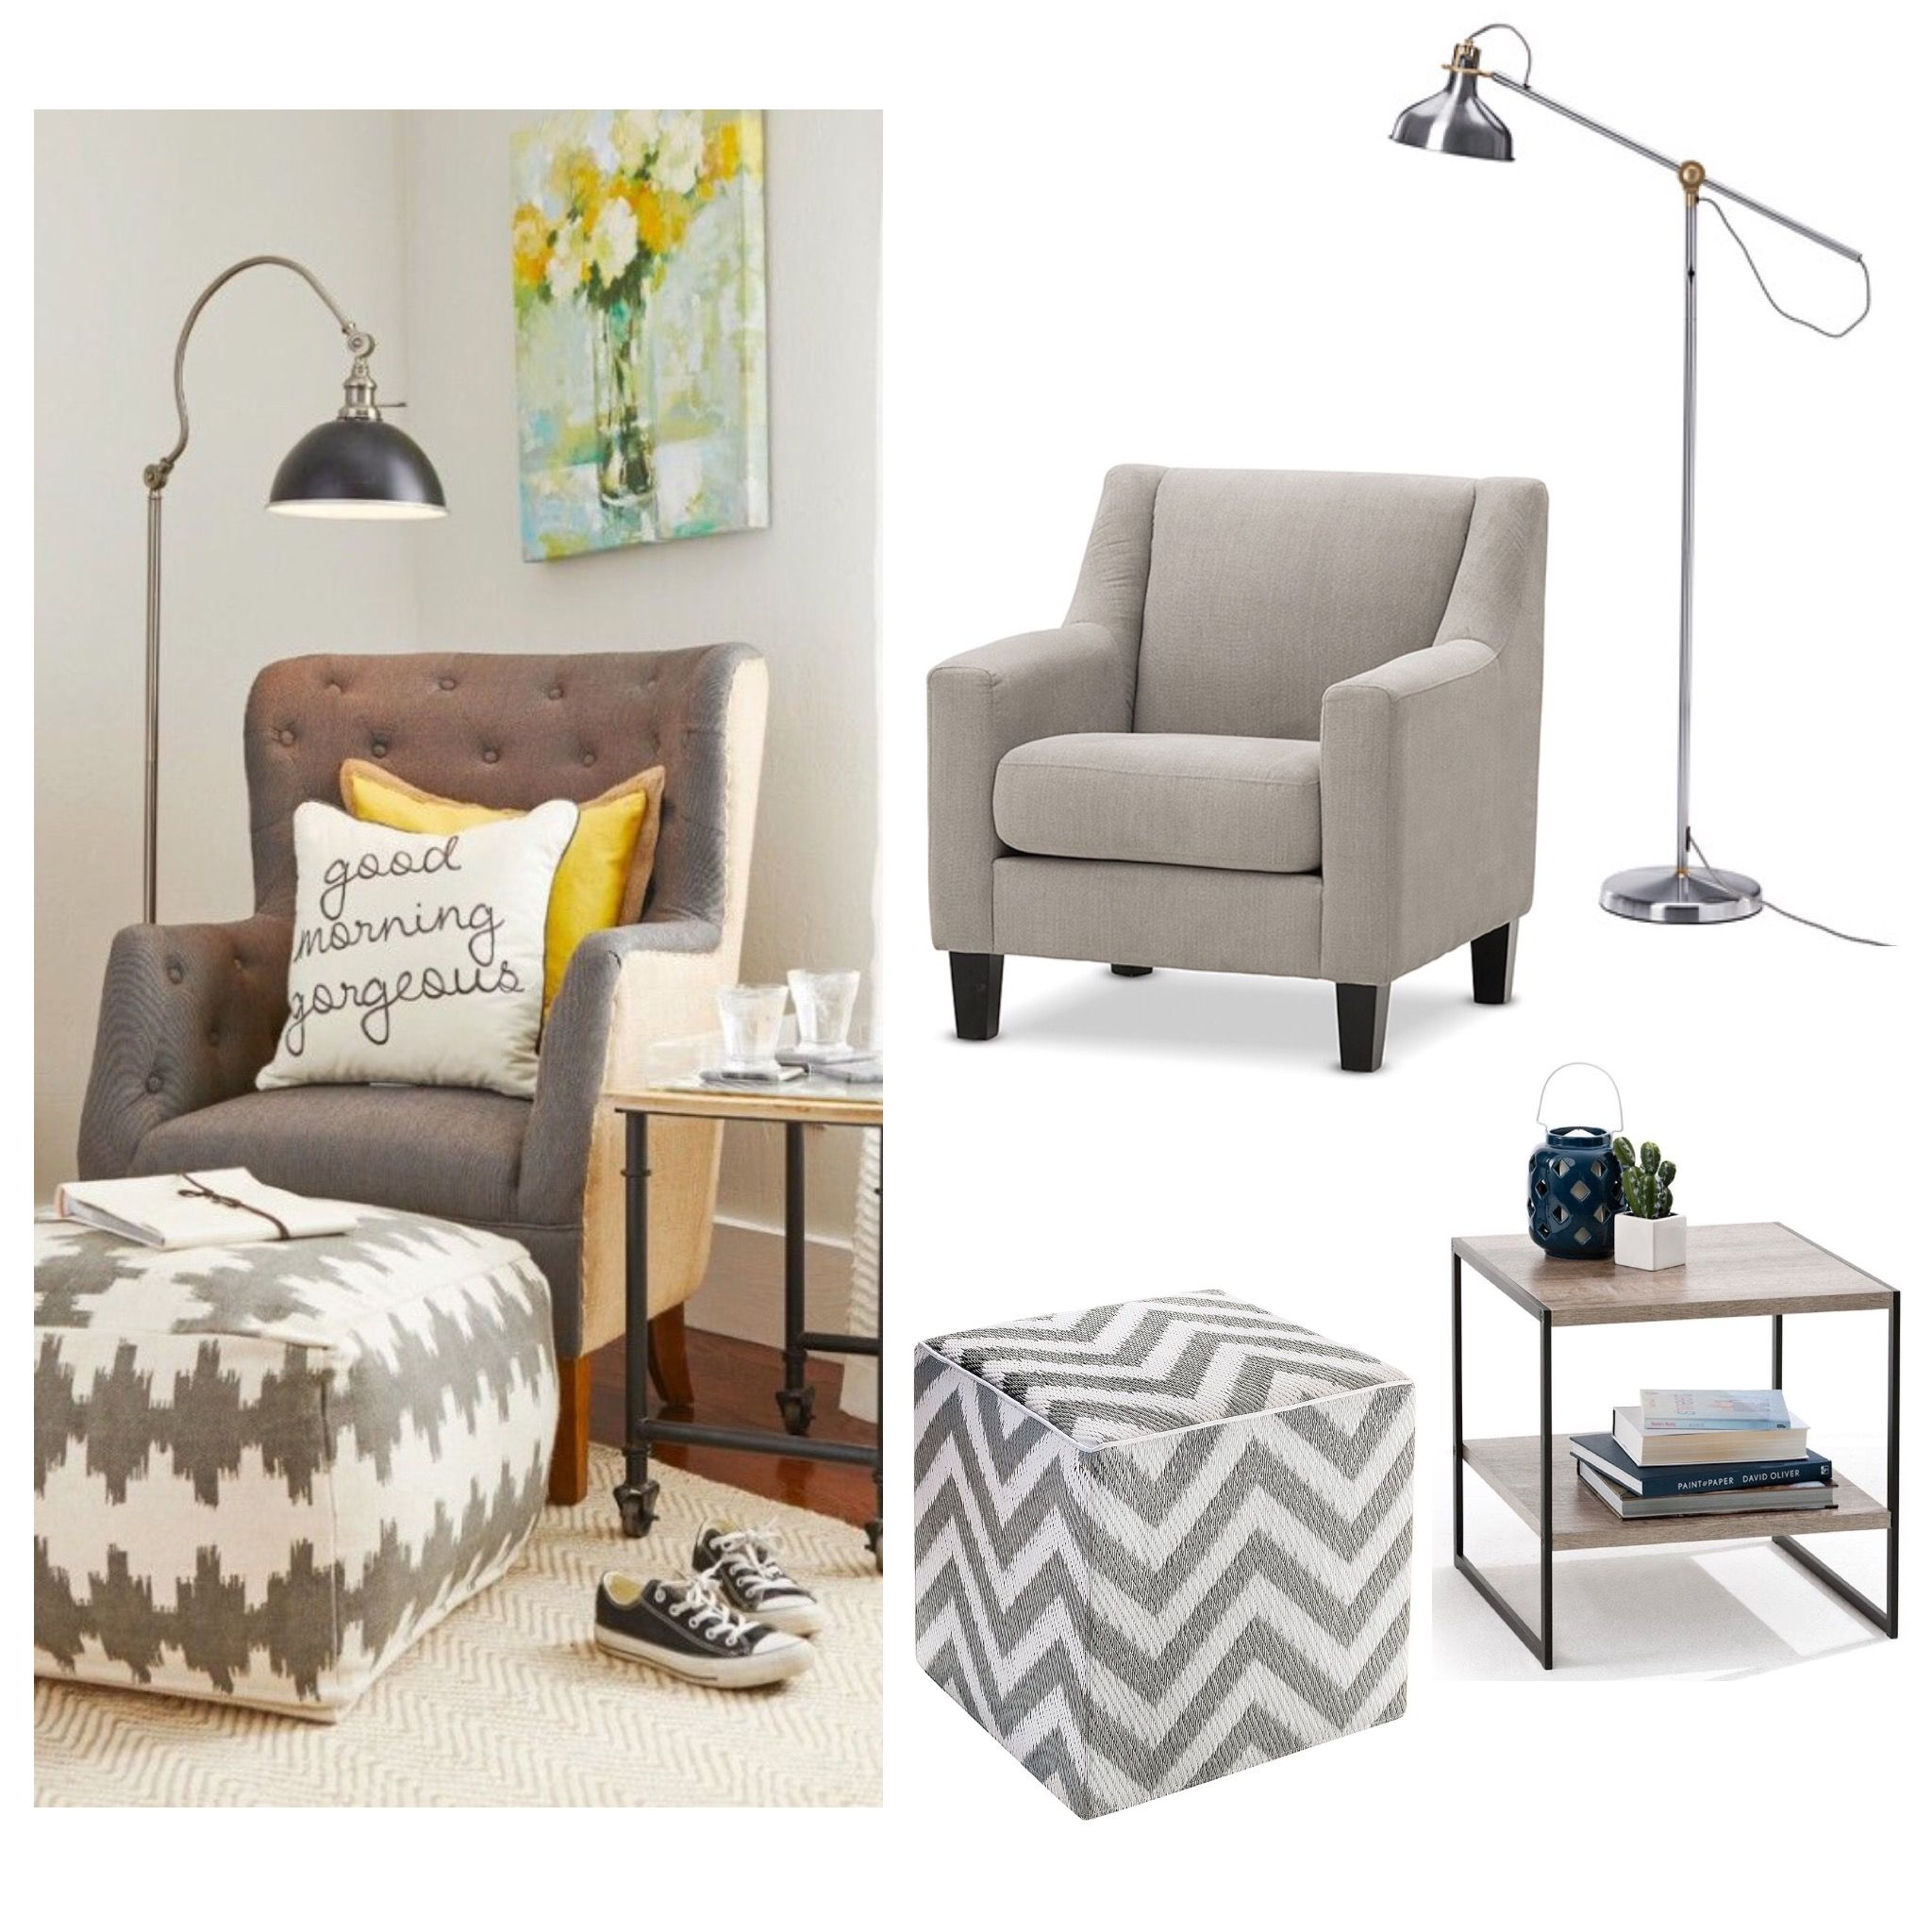 The Best Part Of Winter Is Curling Up In A Great Reading Chair With A Good  Book. Create This Reading Corner For Under $500. Carrie Fabric Accent Chair  From ...